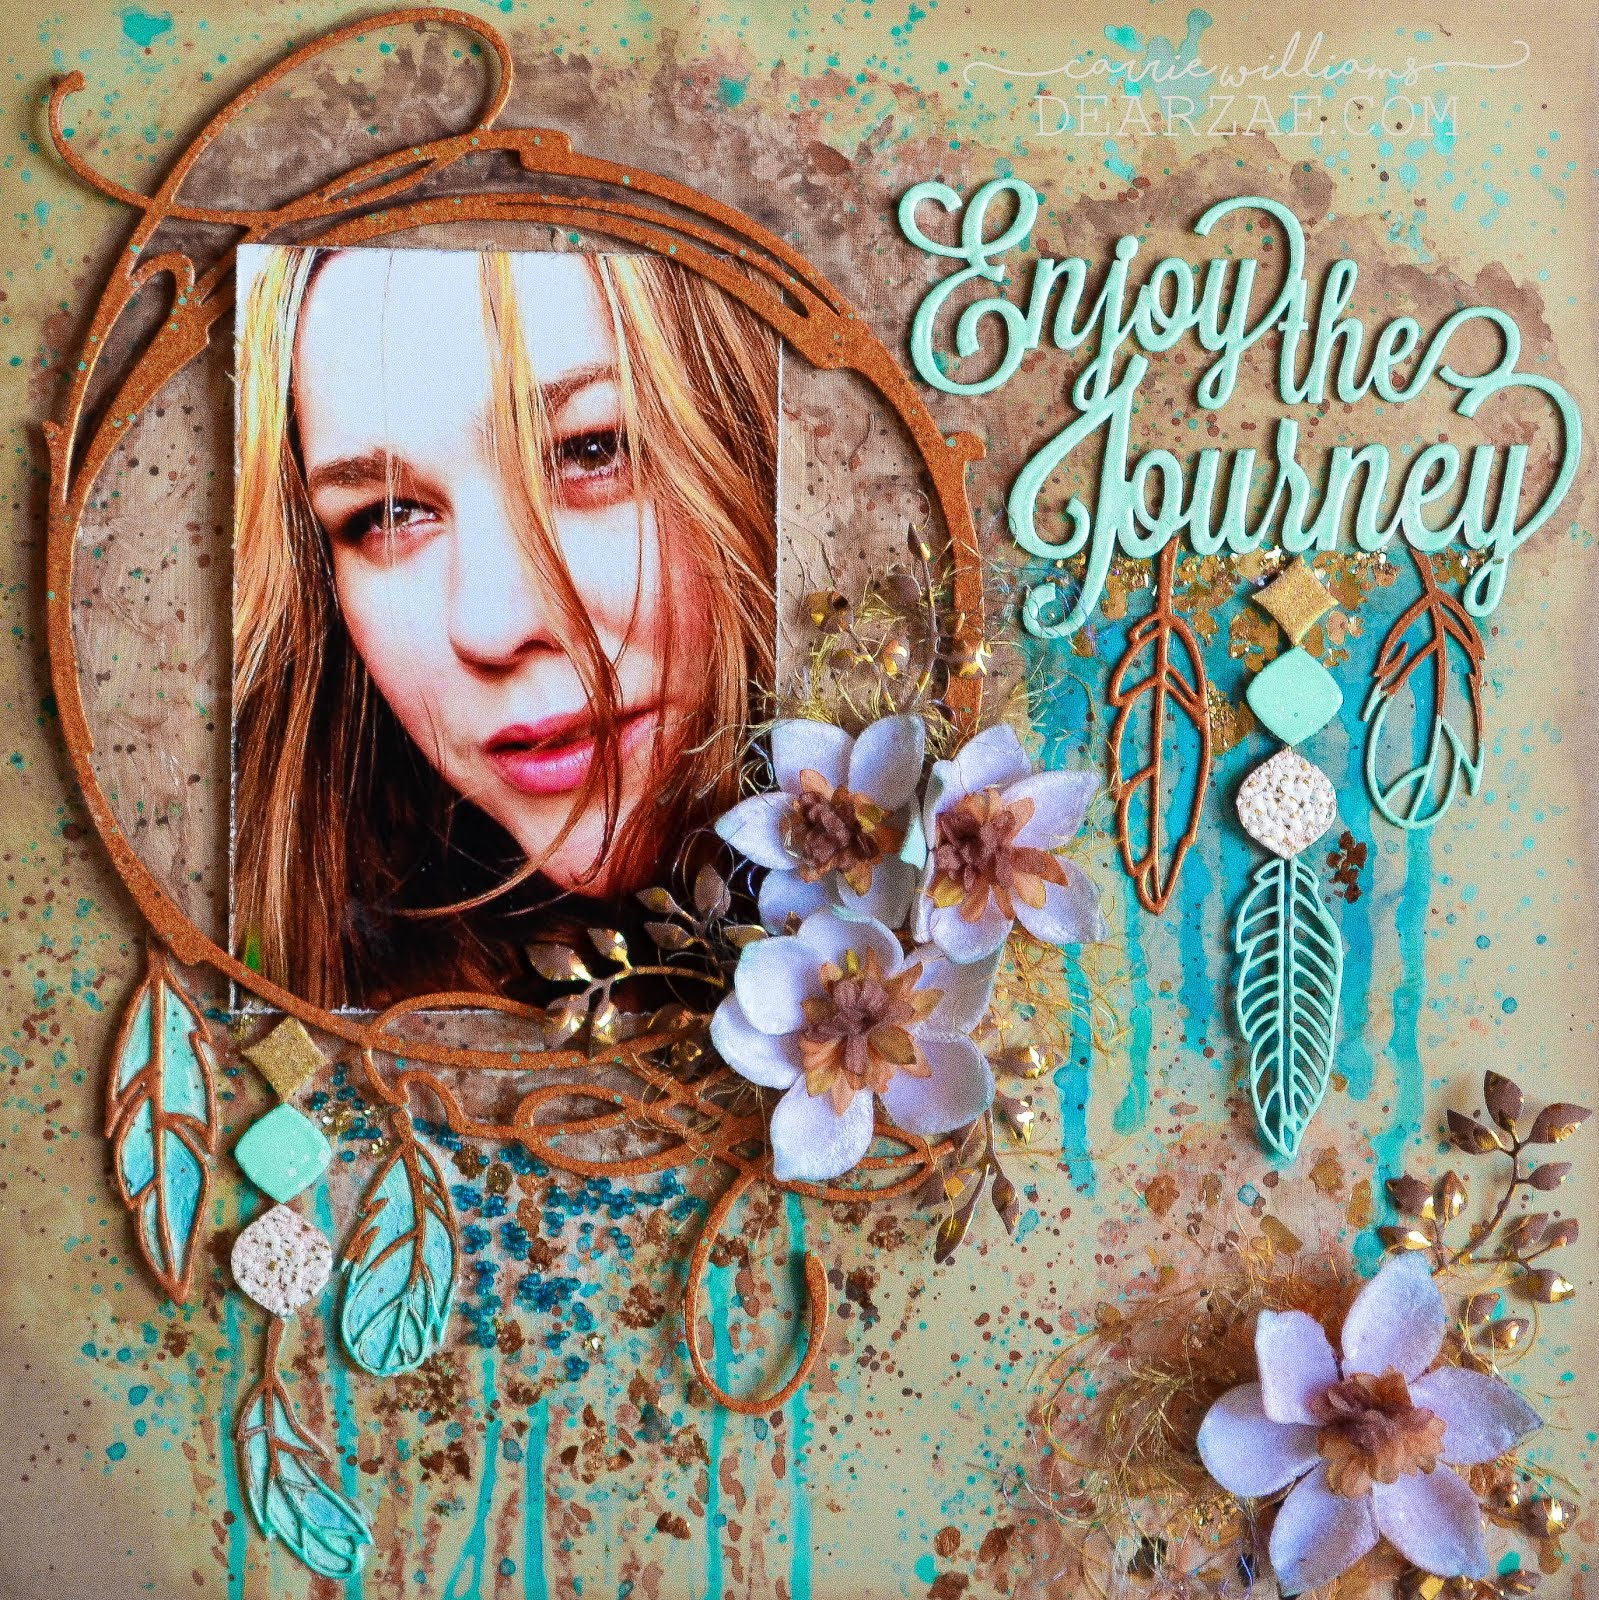 Mixed media scrapbook layout page in turquoise, aqua, copper, and bronze with chipboard frame and feathers with texture paste, watercolors, paint splatters, glimmer mist, mica flakes, die cut foliage, and Petaloo velvet magnolias